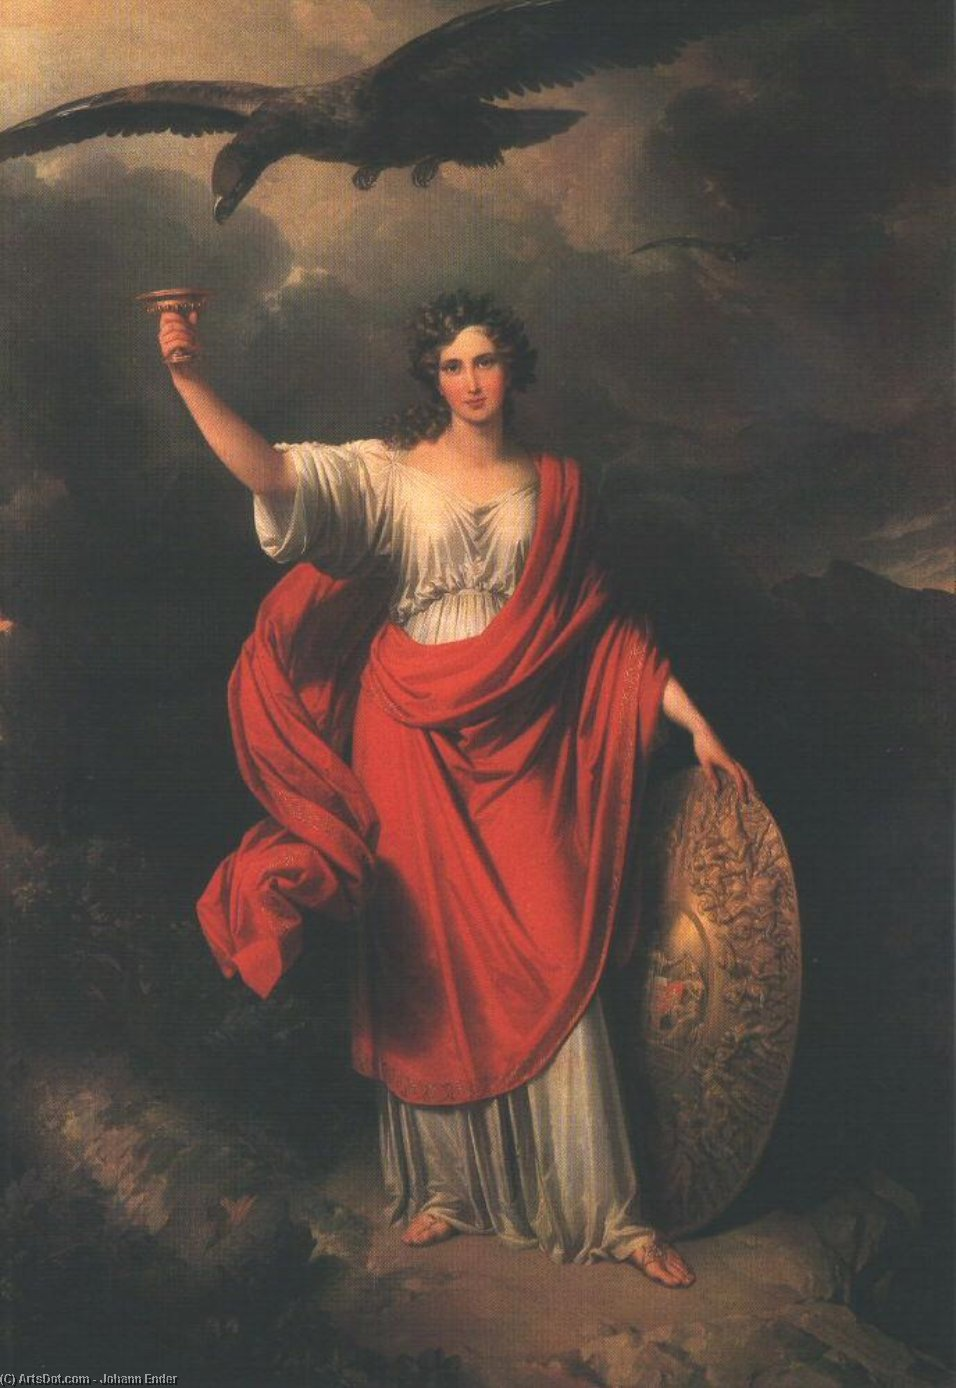 Wikioo.org - The Encyclopedia of Fine Arts - Painting, Artwork by Johann Nepomuk Ender - From Darkness, the Light. Allegory of the Hungarian Academy of Sciences